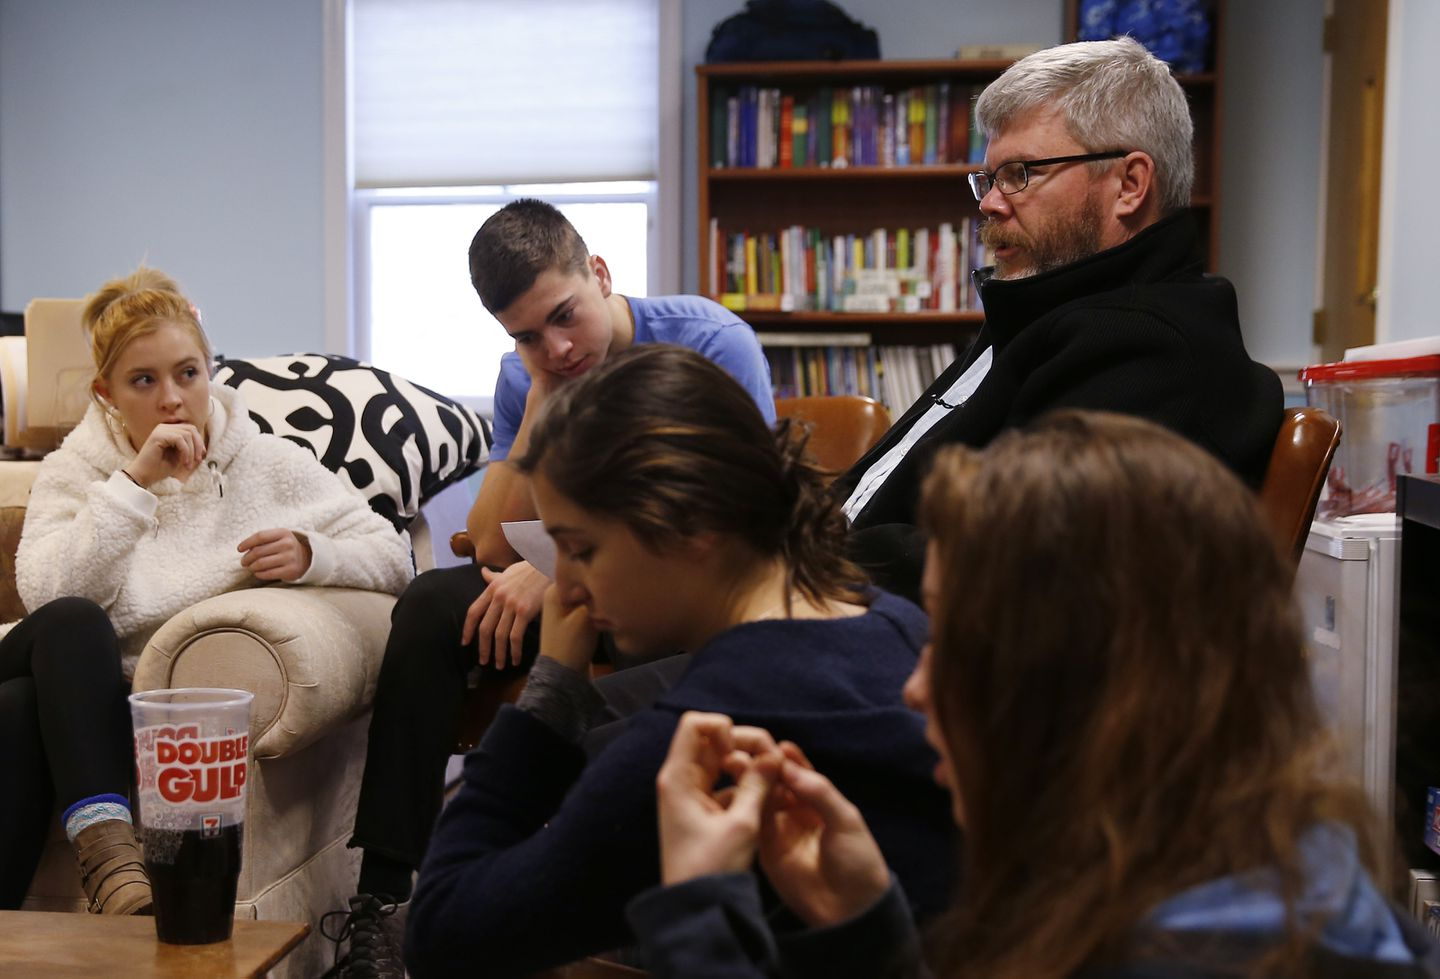 Jim Flanagan, the coordinator of youth ministries at St. Elizabeth Church, met with a group of students from the church to plan upcoming youth ministry events.